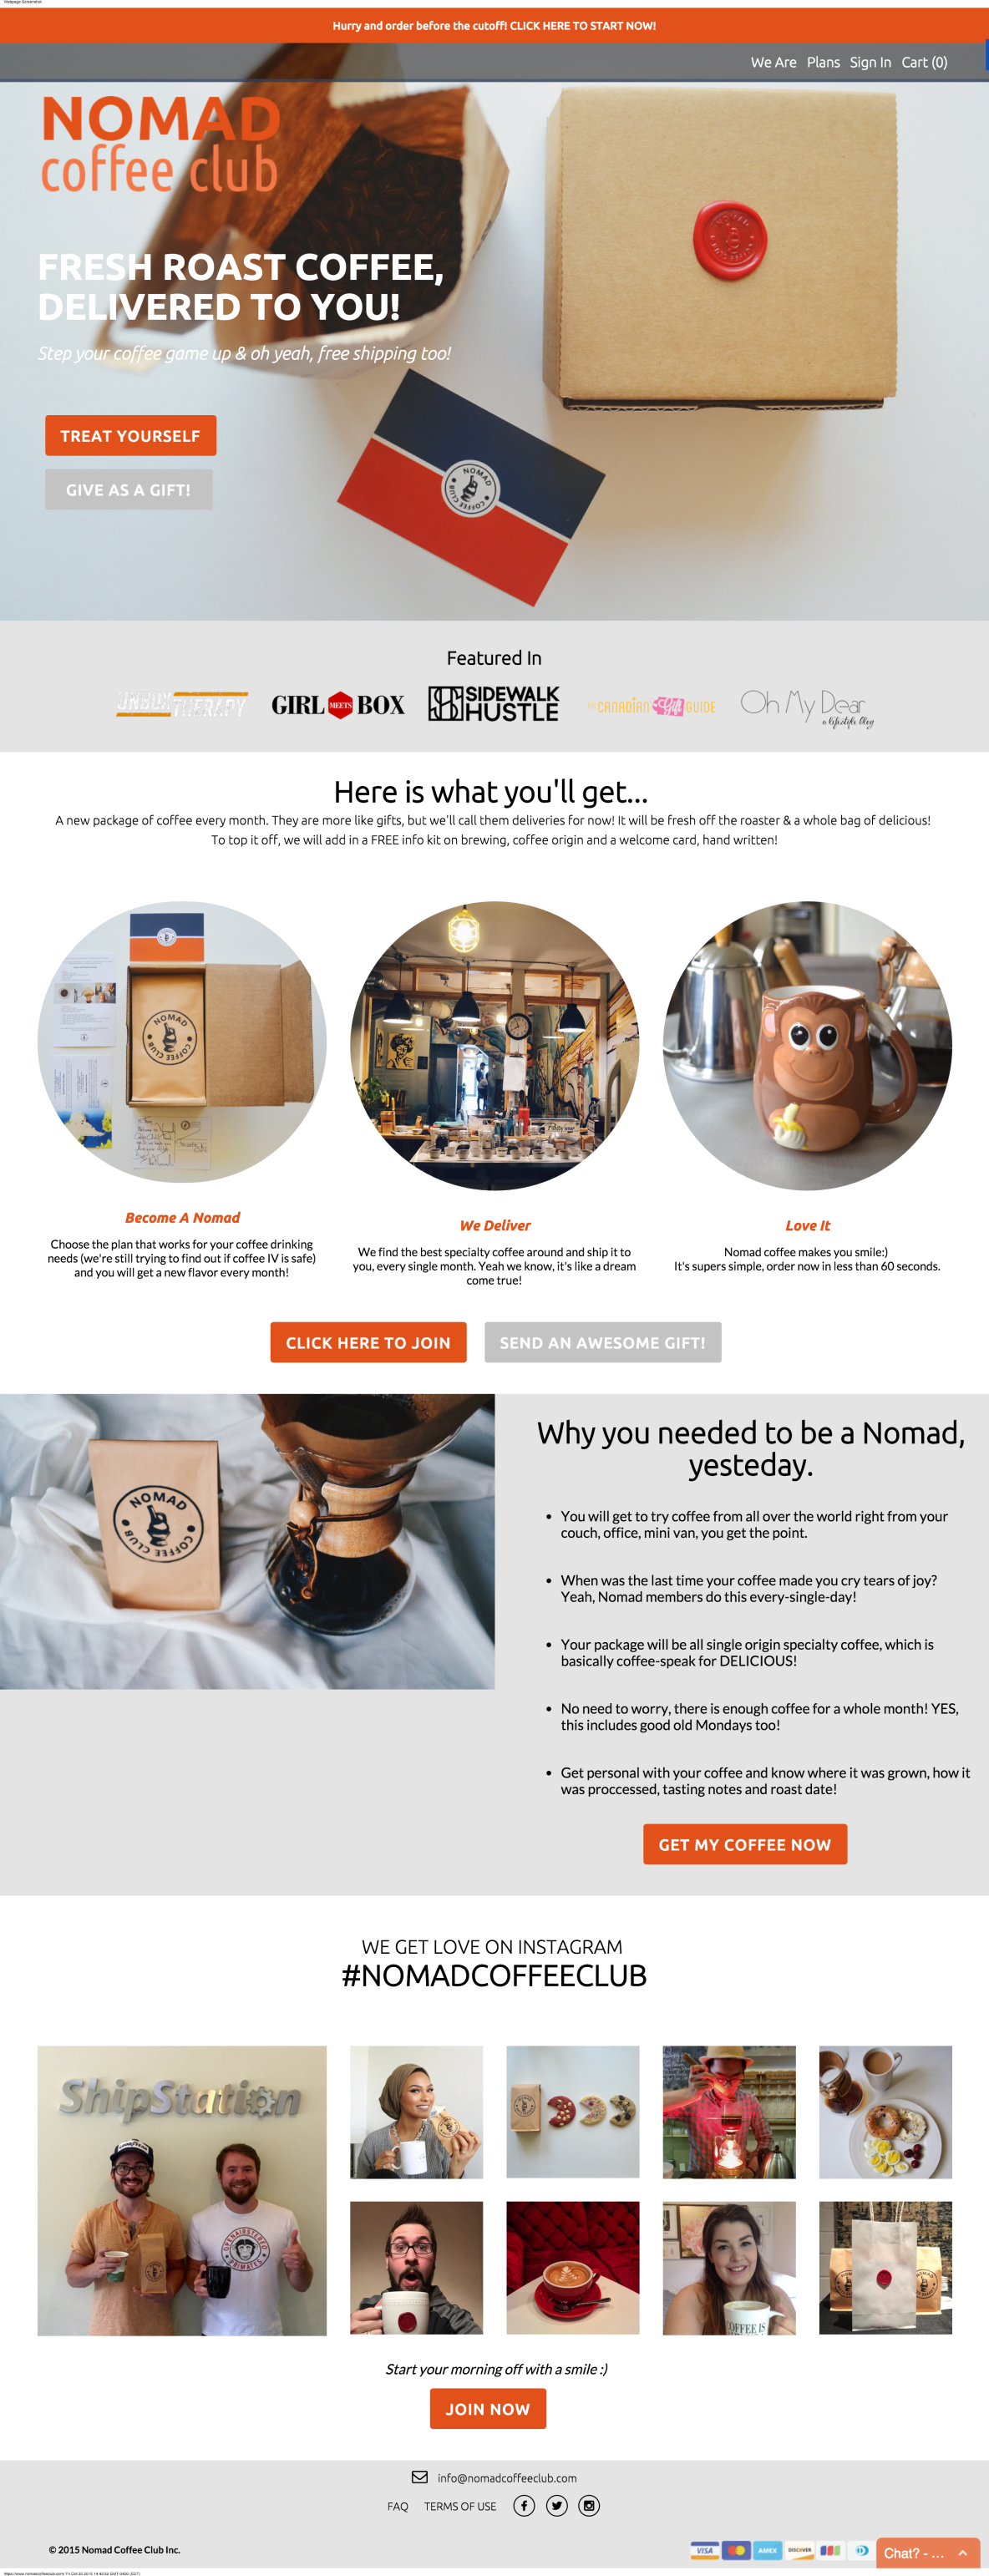 Nomad-Coffee-Club-A-Coffee-Subscription-For-Your-Daily-Fix-1